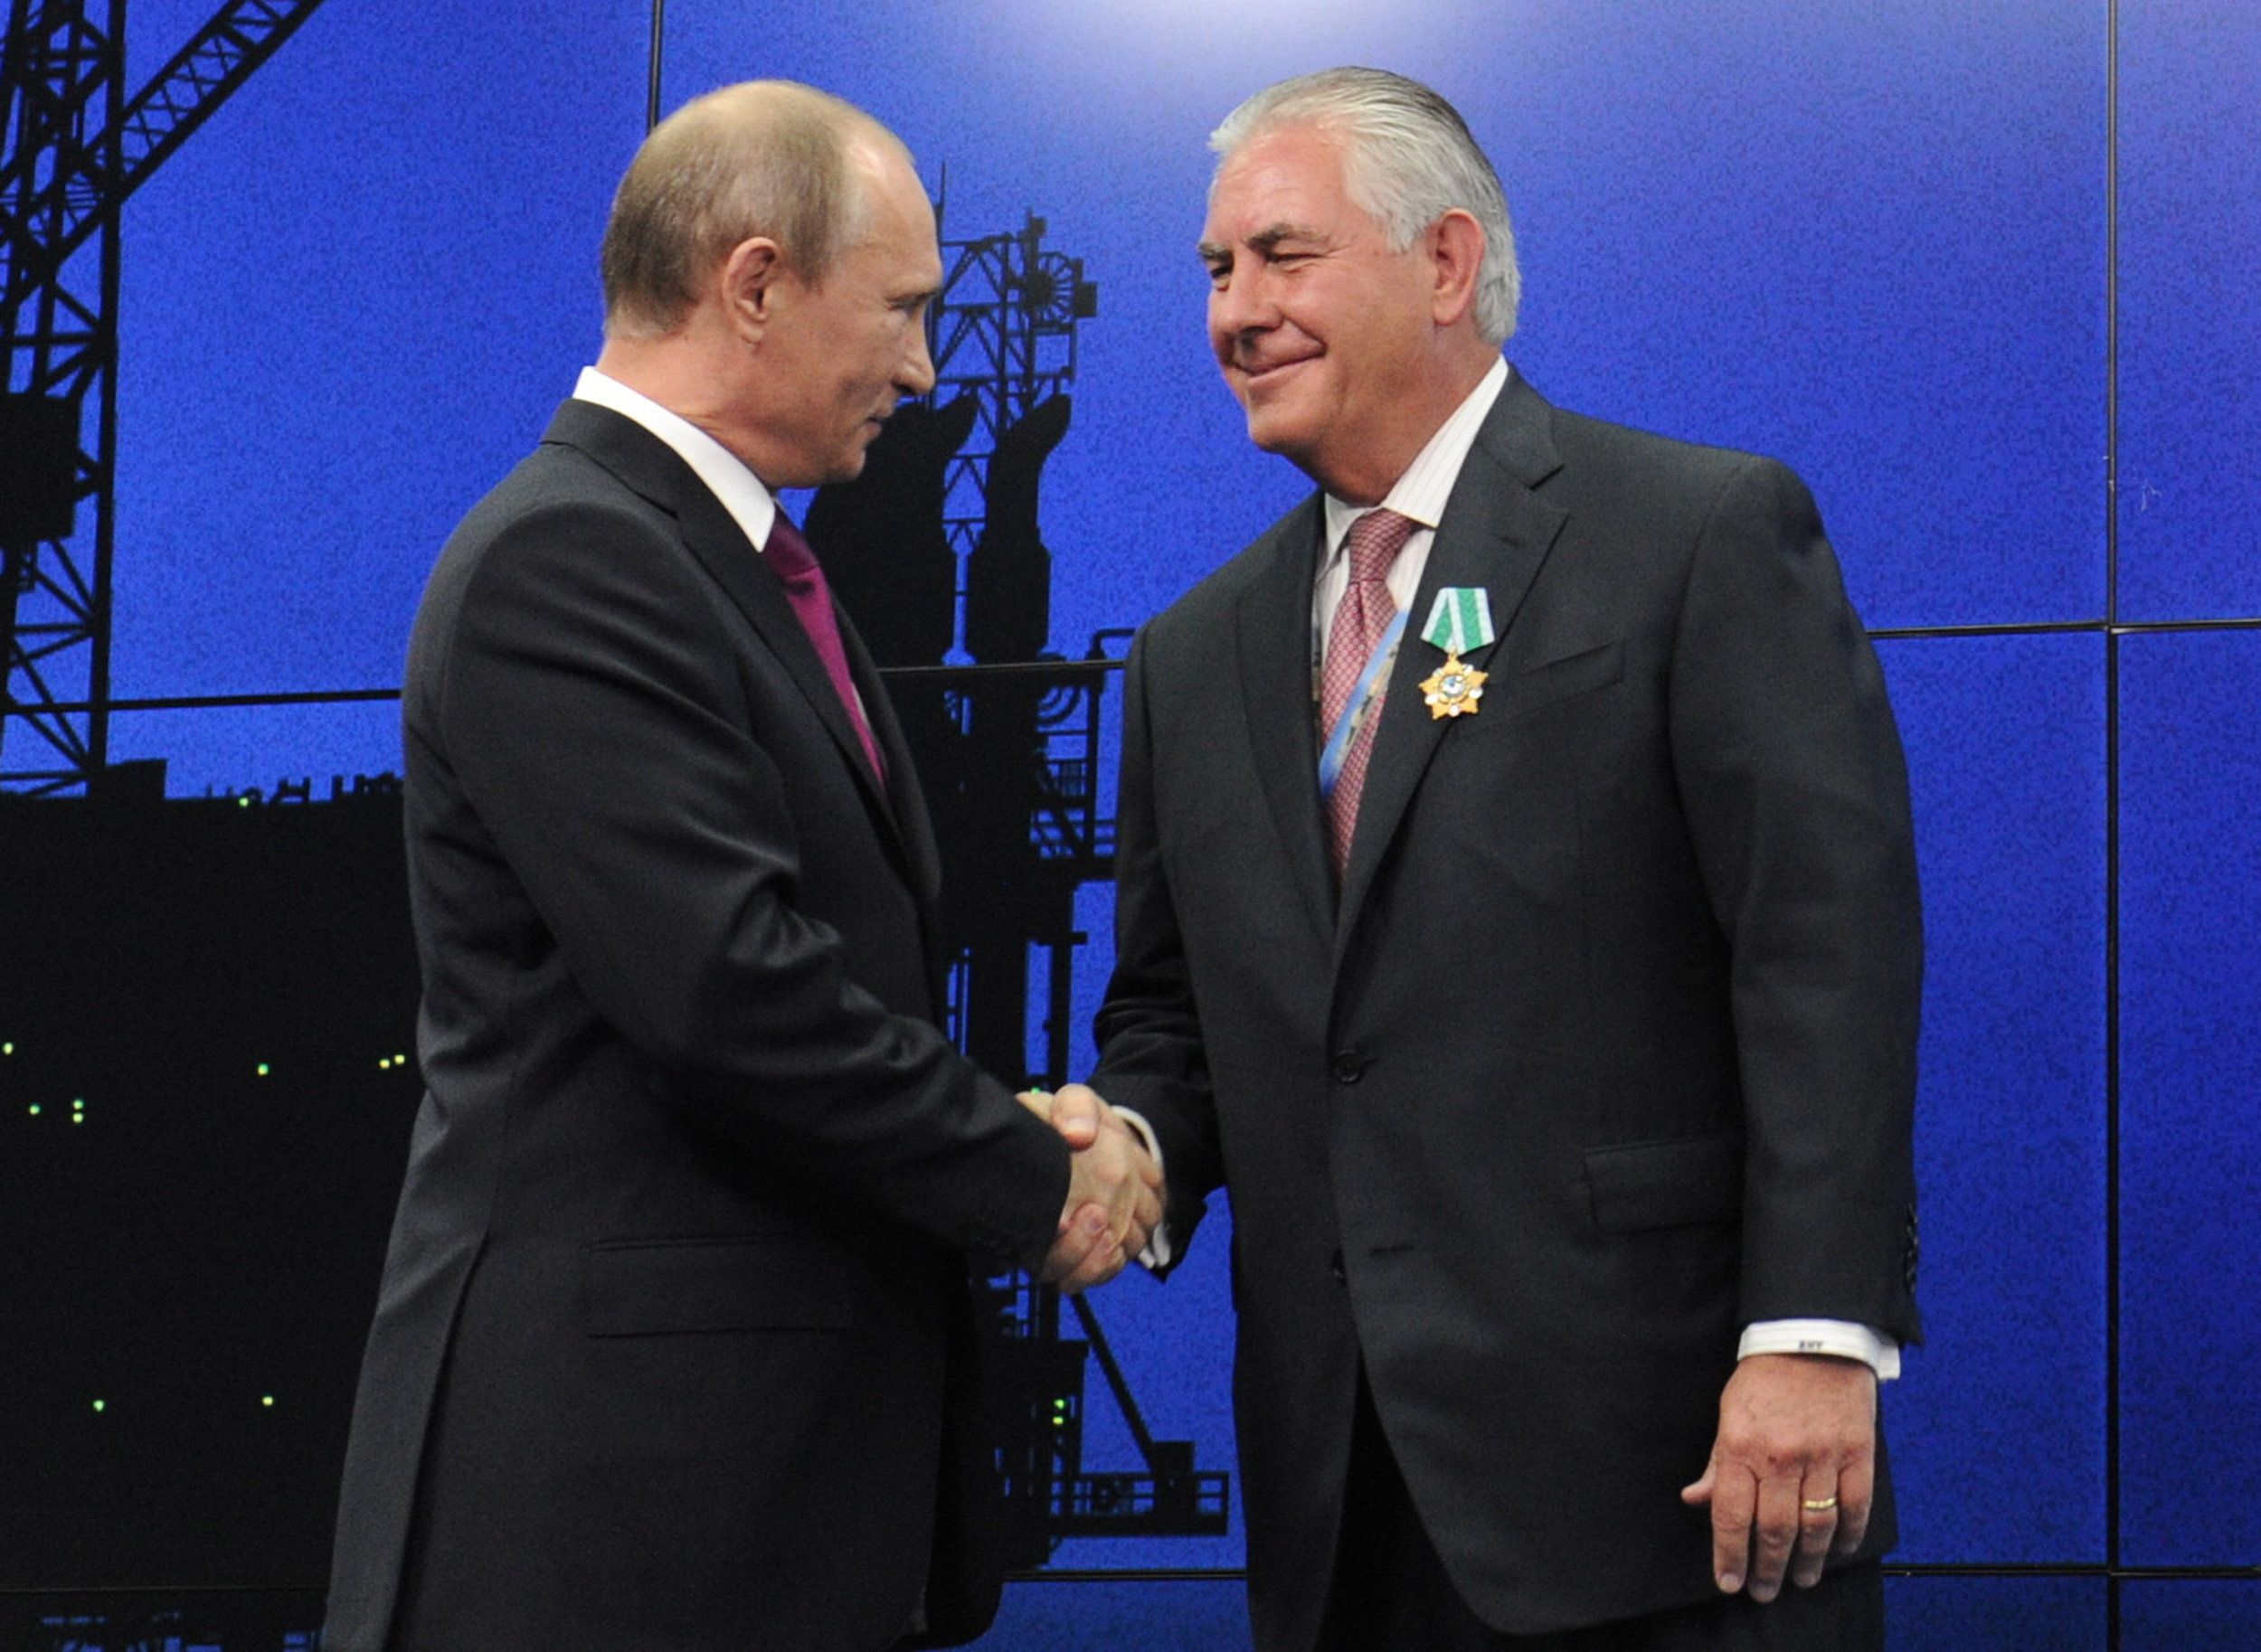 Russia's president Vladimir Putin and now-Secretary of StateRex Tillerson at an award ceremony for employees and chief